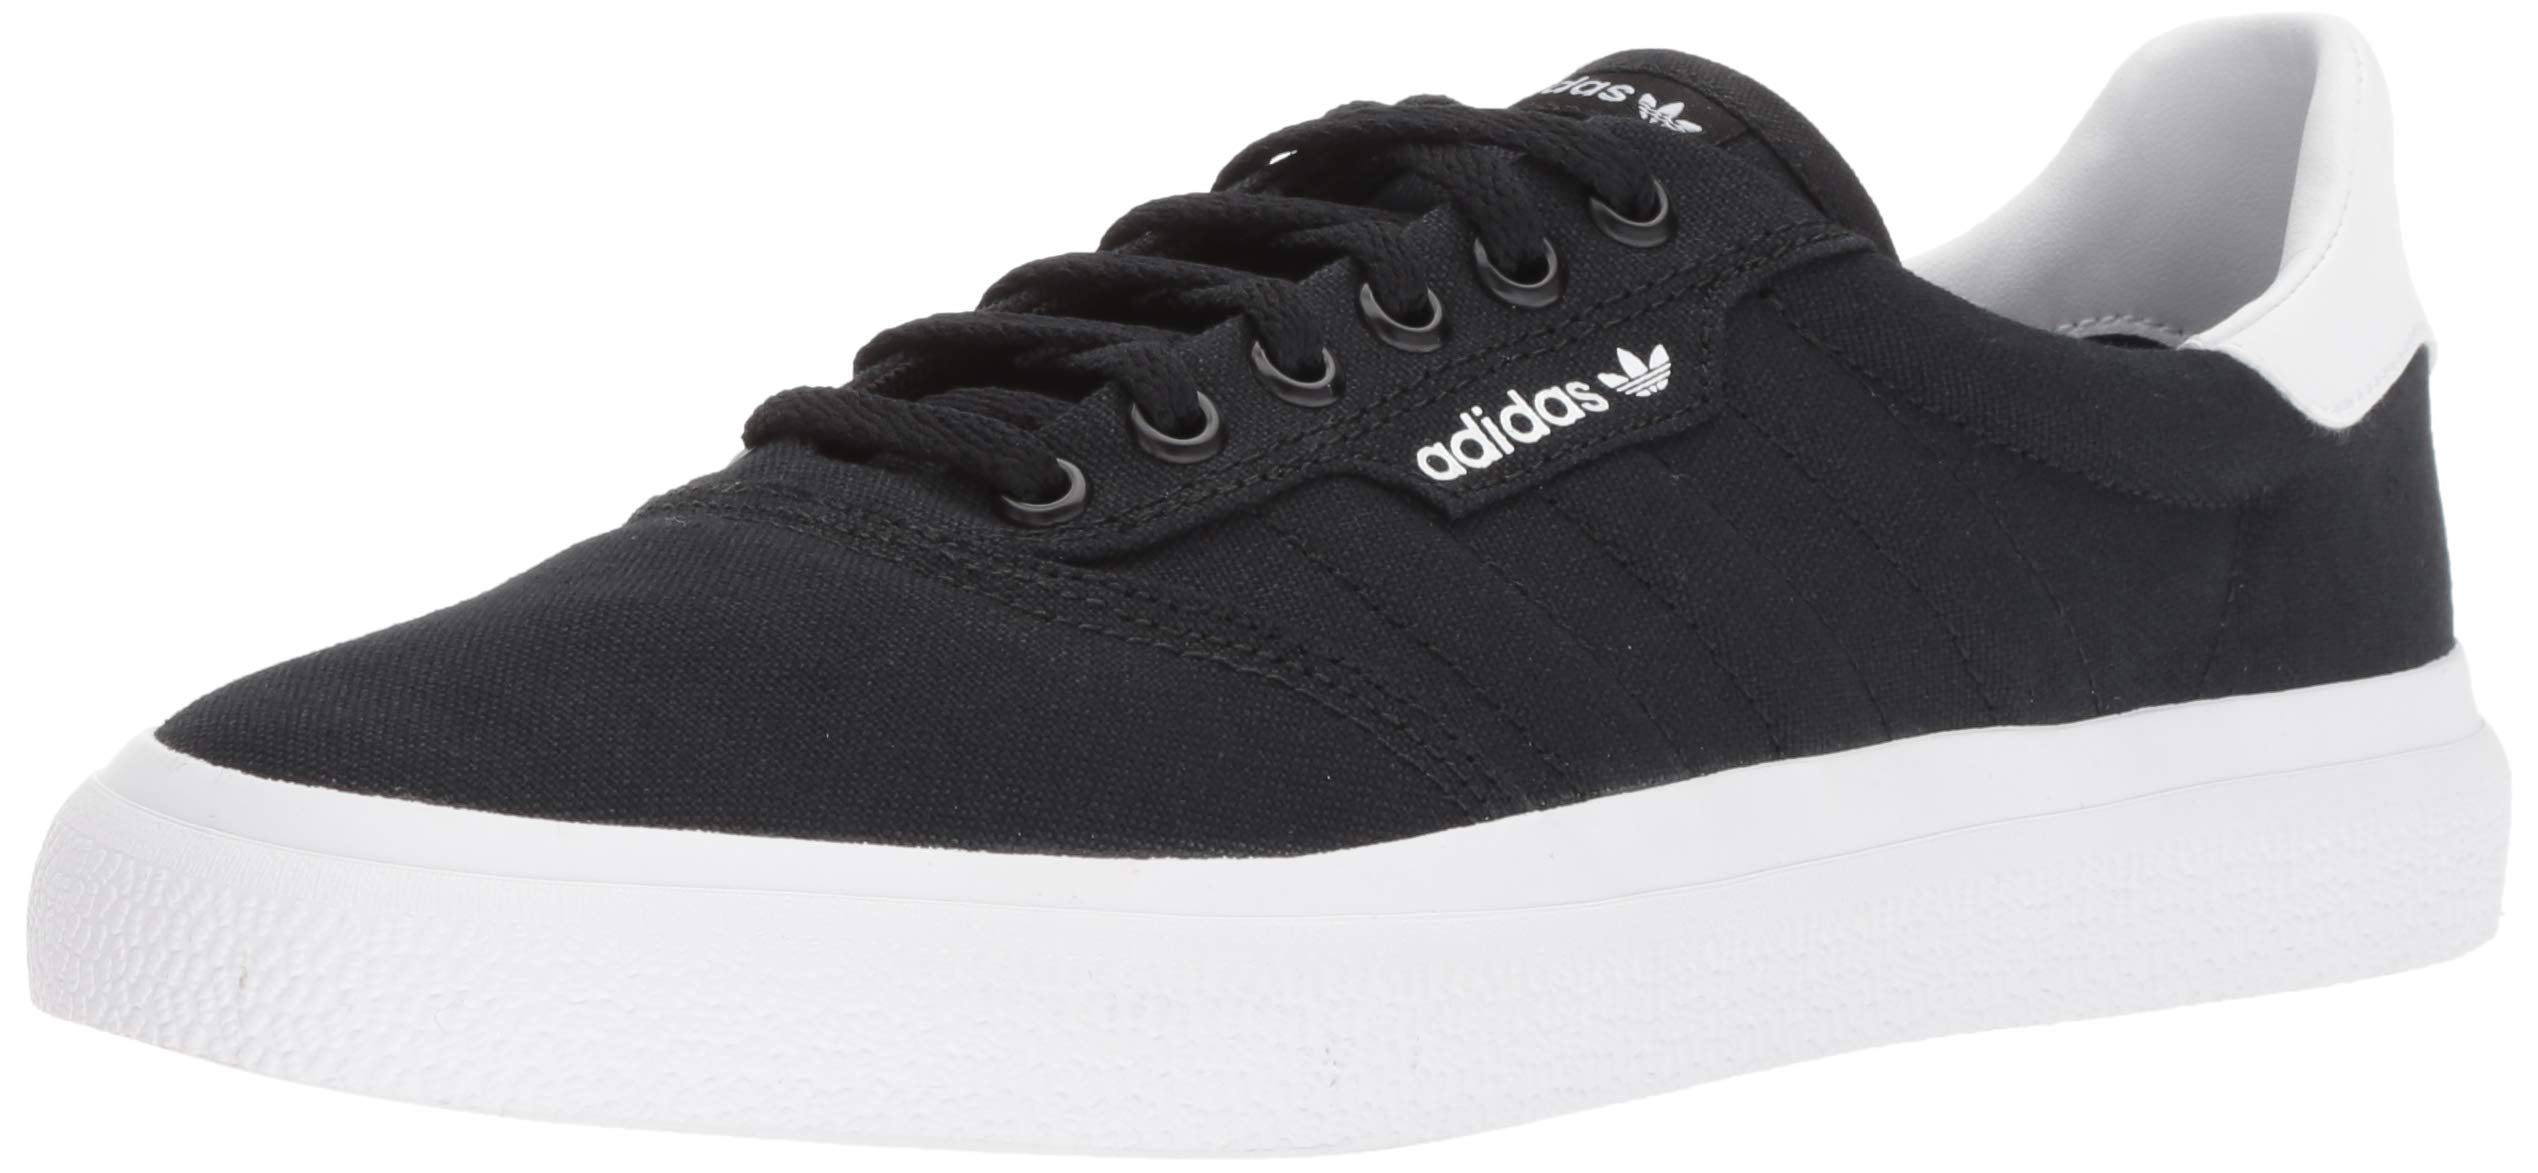 adidas Originals 3 MC Skate Shoe Black/White, 4 M US